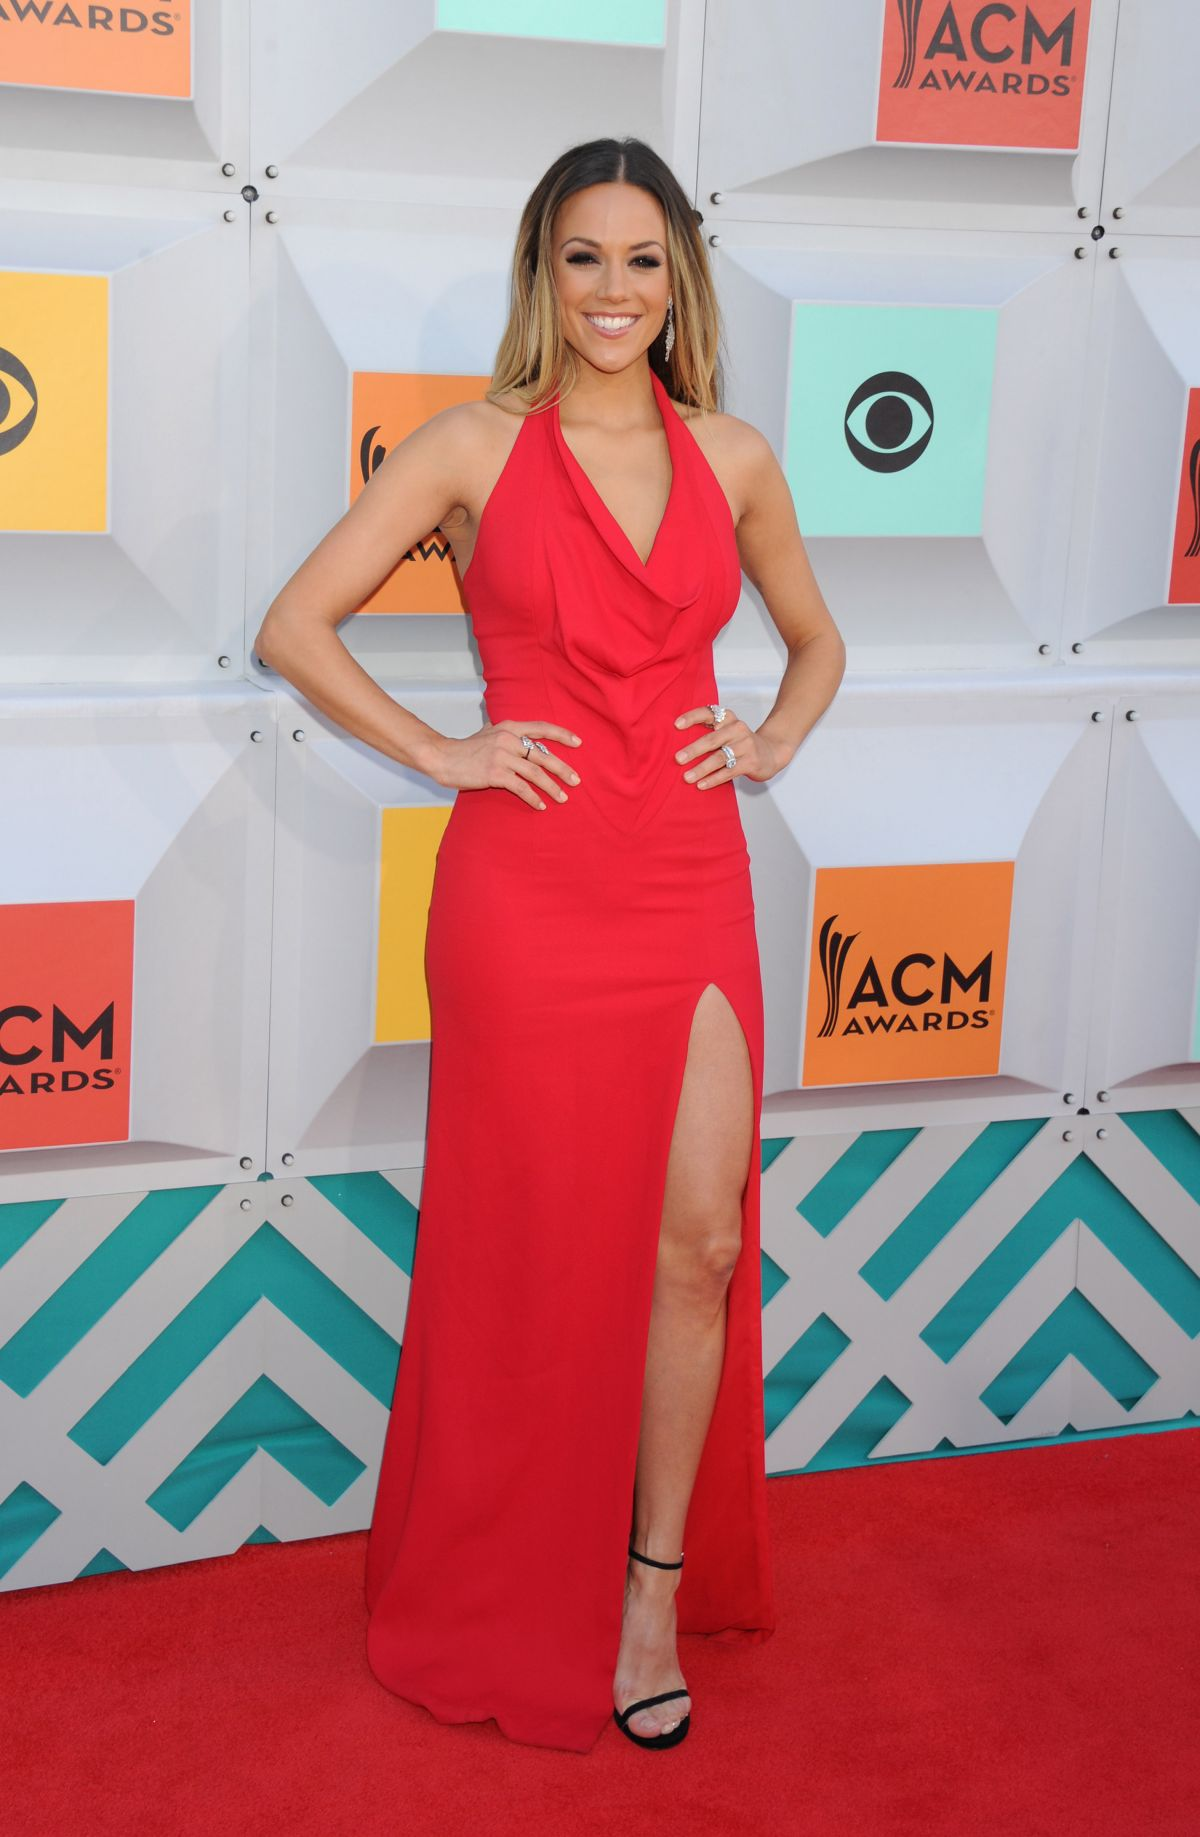 JANA KRAMER at 51st Annual ACM Awards in Las Vegas 04/03/2016